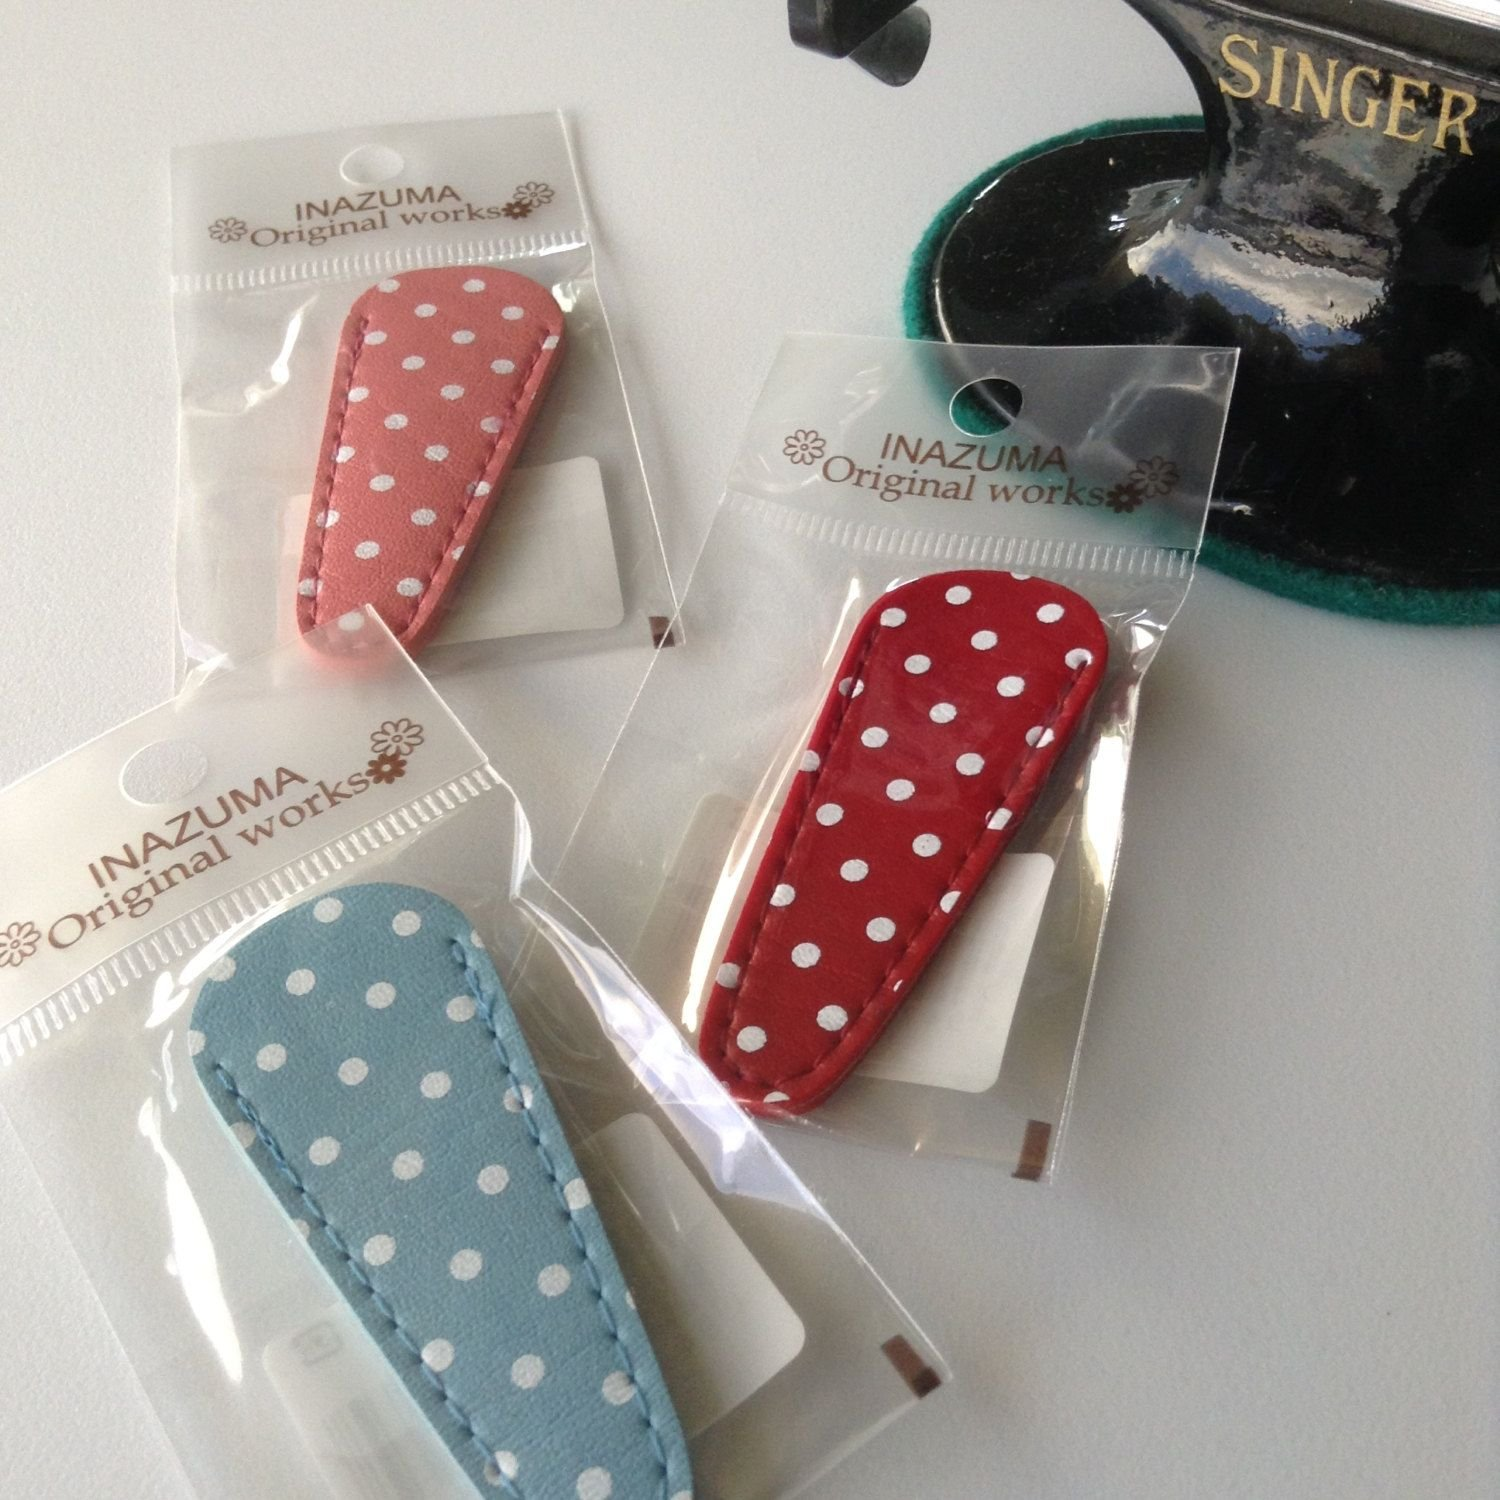 Inazuma Original Works - One Embroidery Scissor Case - EMA-3 Red Polka Dot